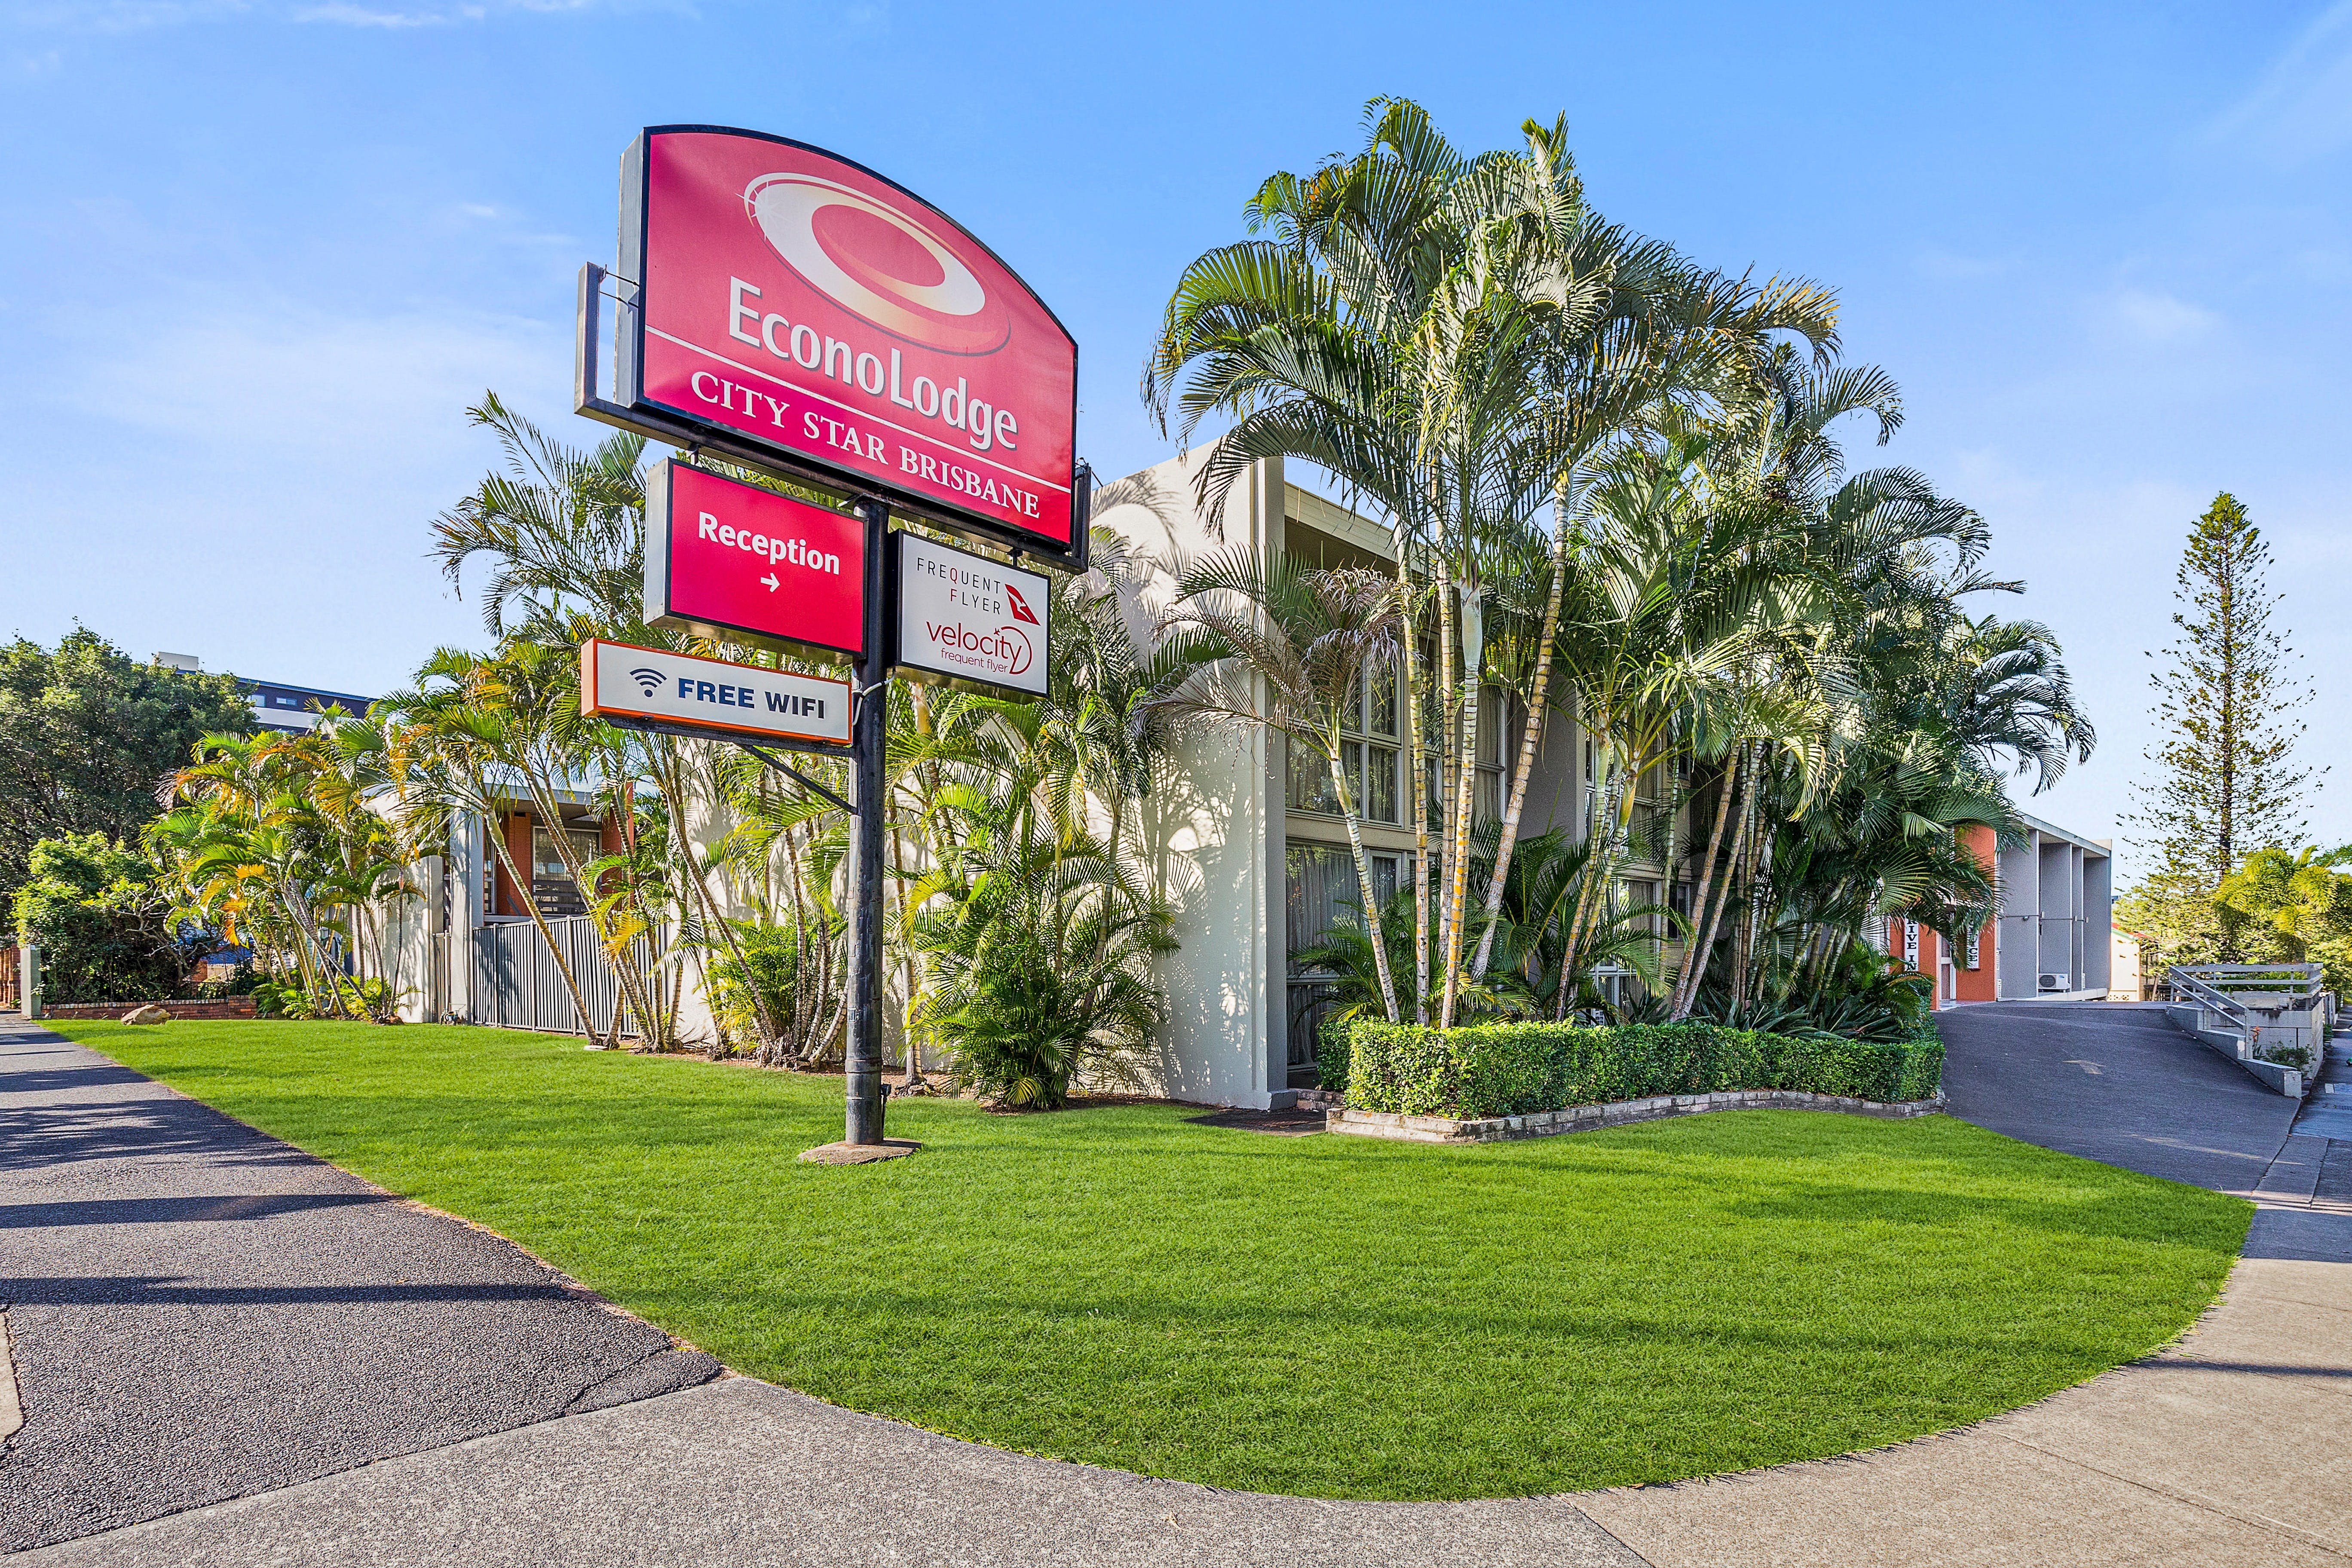 Econo Lodge City Star Brisbane - Lennox Head Accommodation